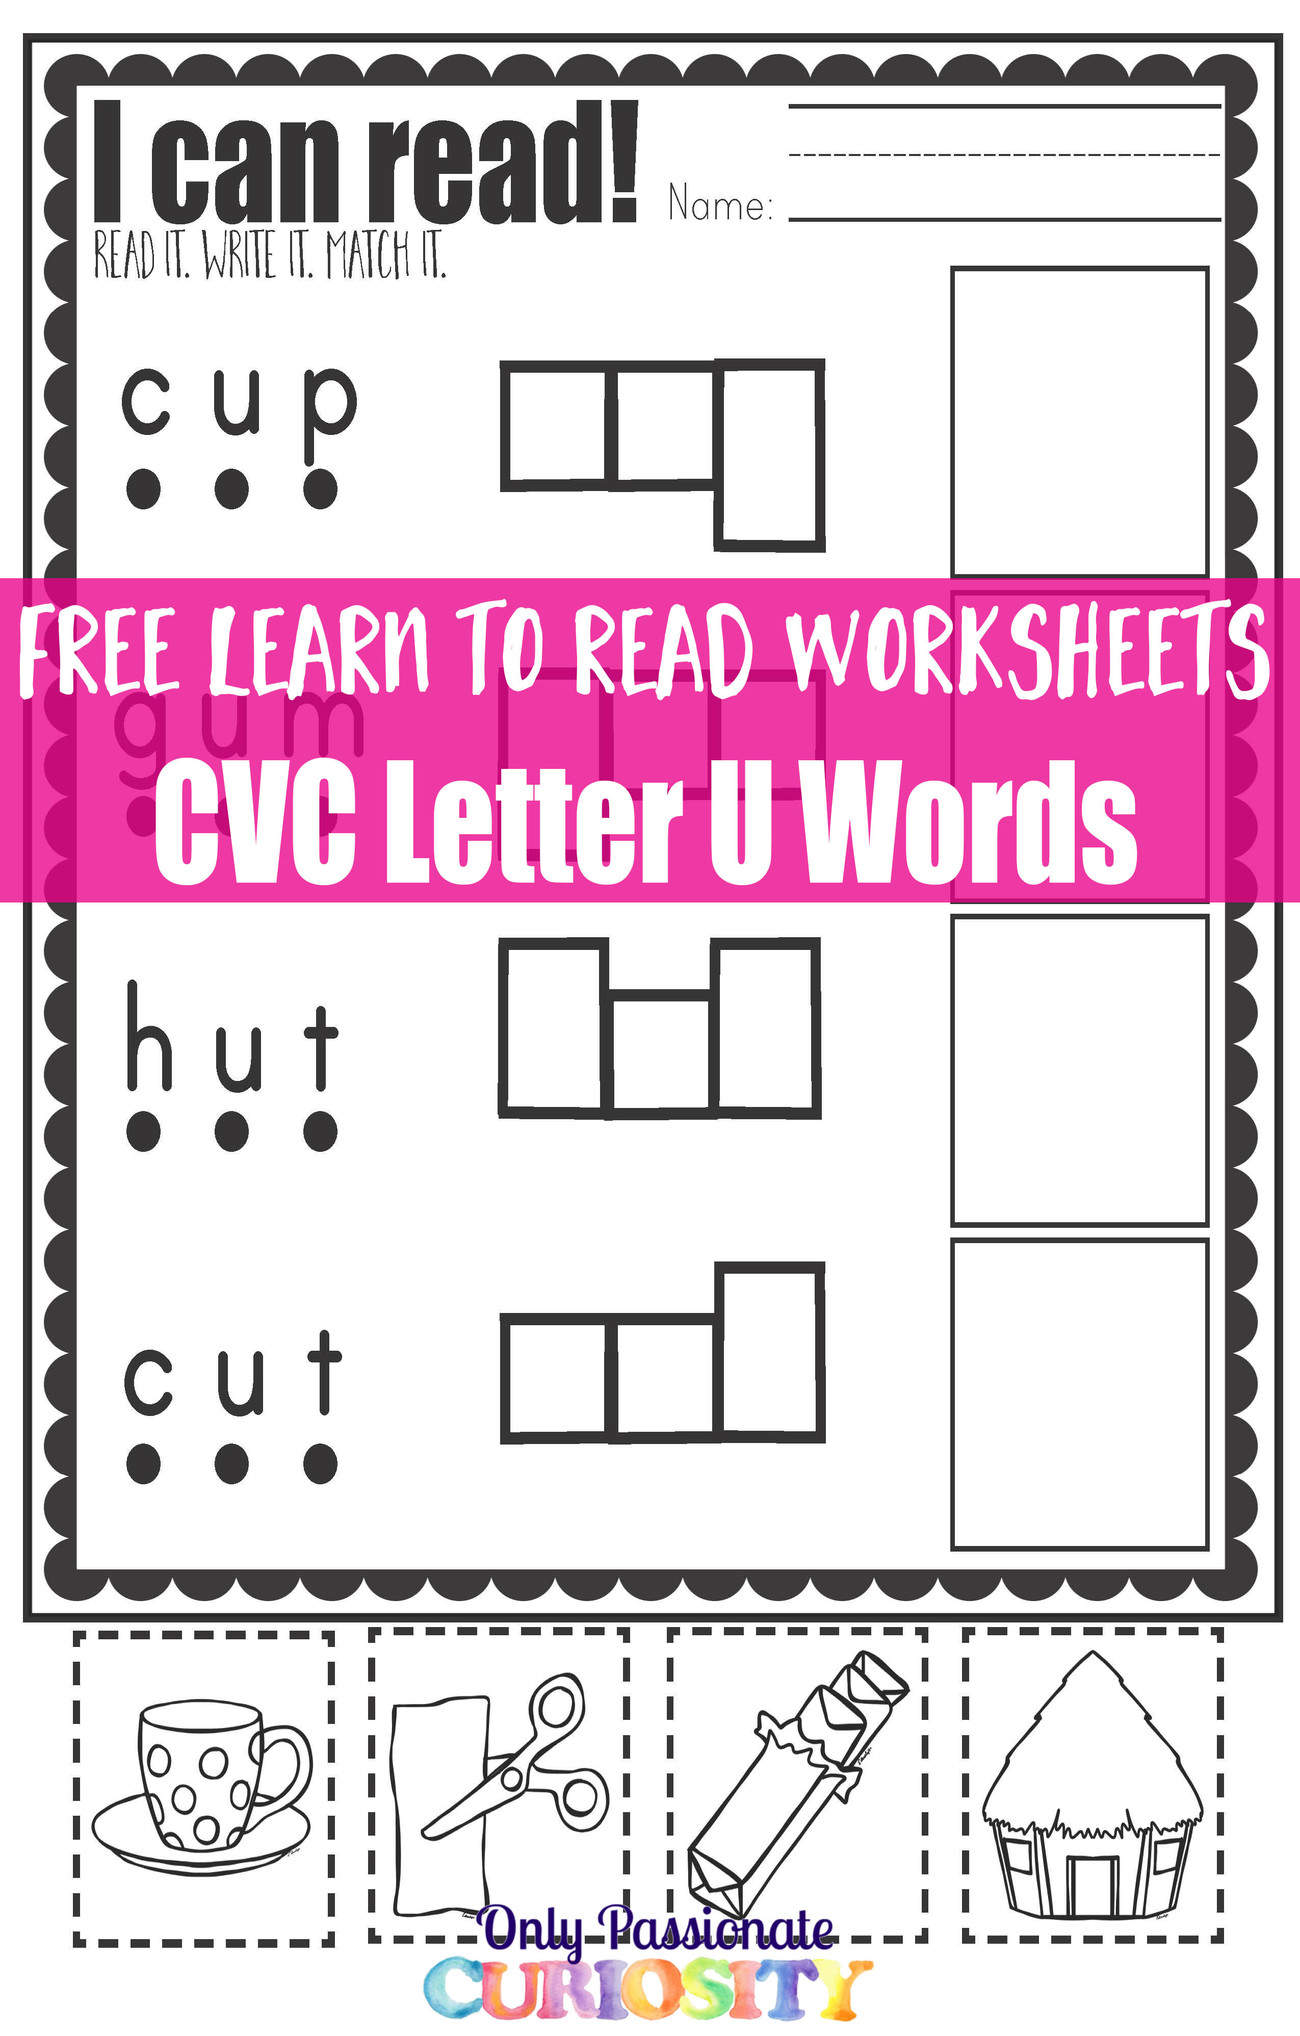 - Learn To Read Worksheets: Practice With CVC U Words - Only